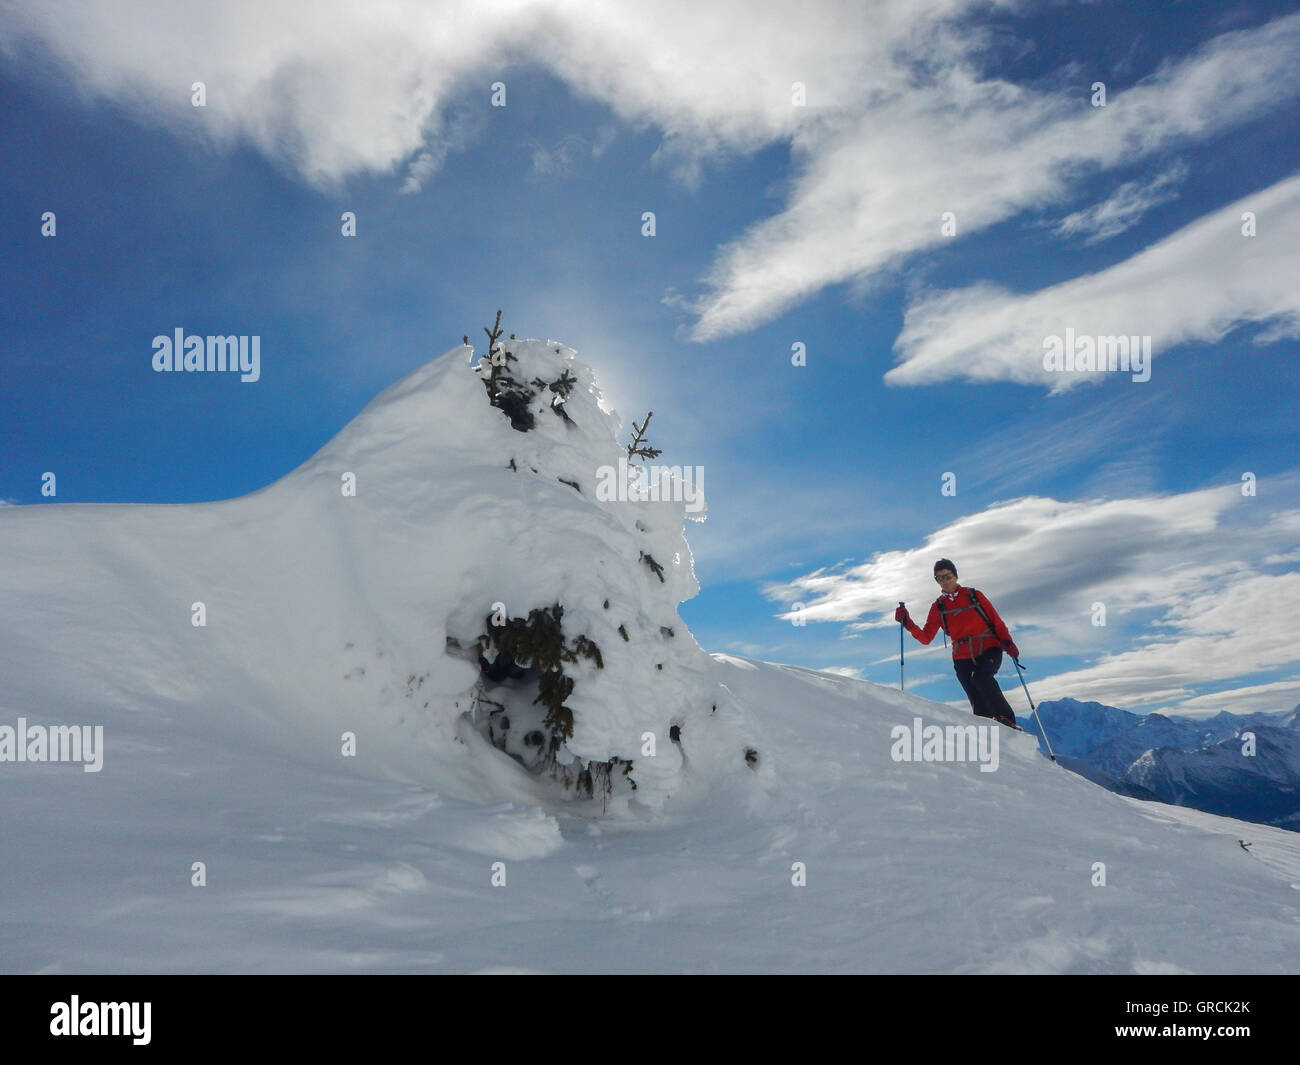 Female Snowshoer Wearing A Red Shirt Walking Towards A Small, Deeply Snowed In Fir Tree. In The Foreground Snowfield, - Stock Image